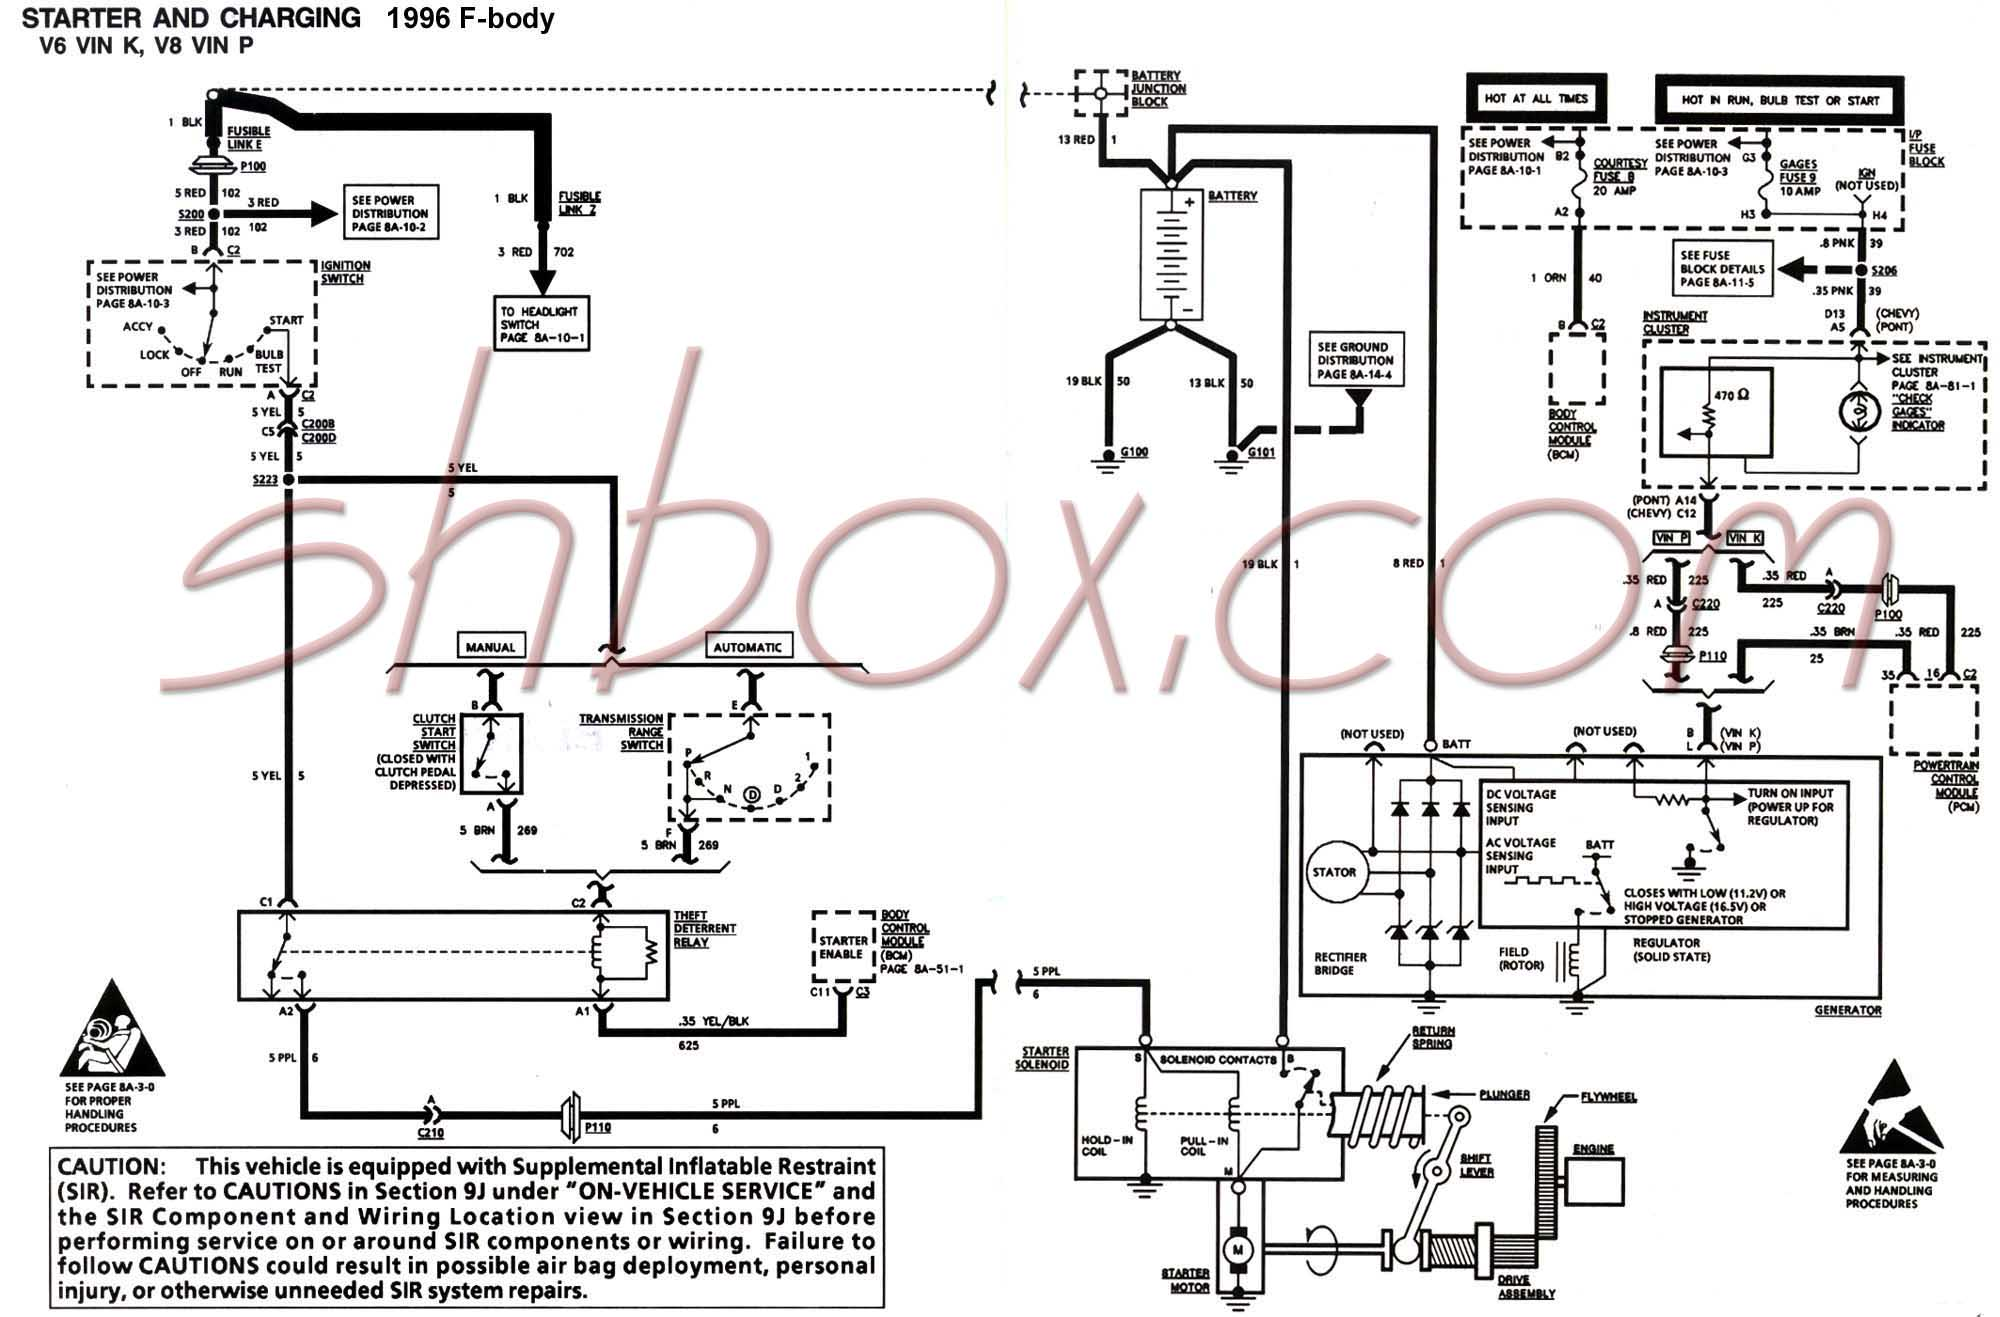 14c2879 96 grand am wiring diagram | wiring library  wiring library